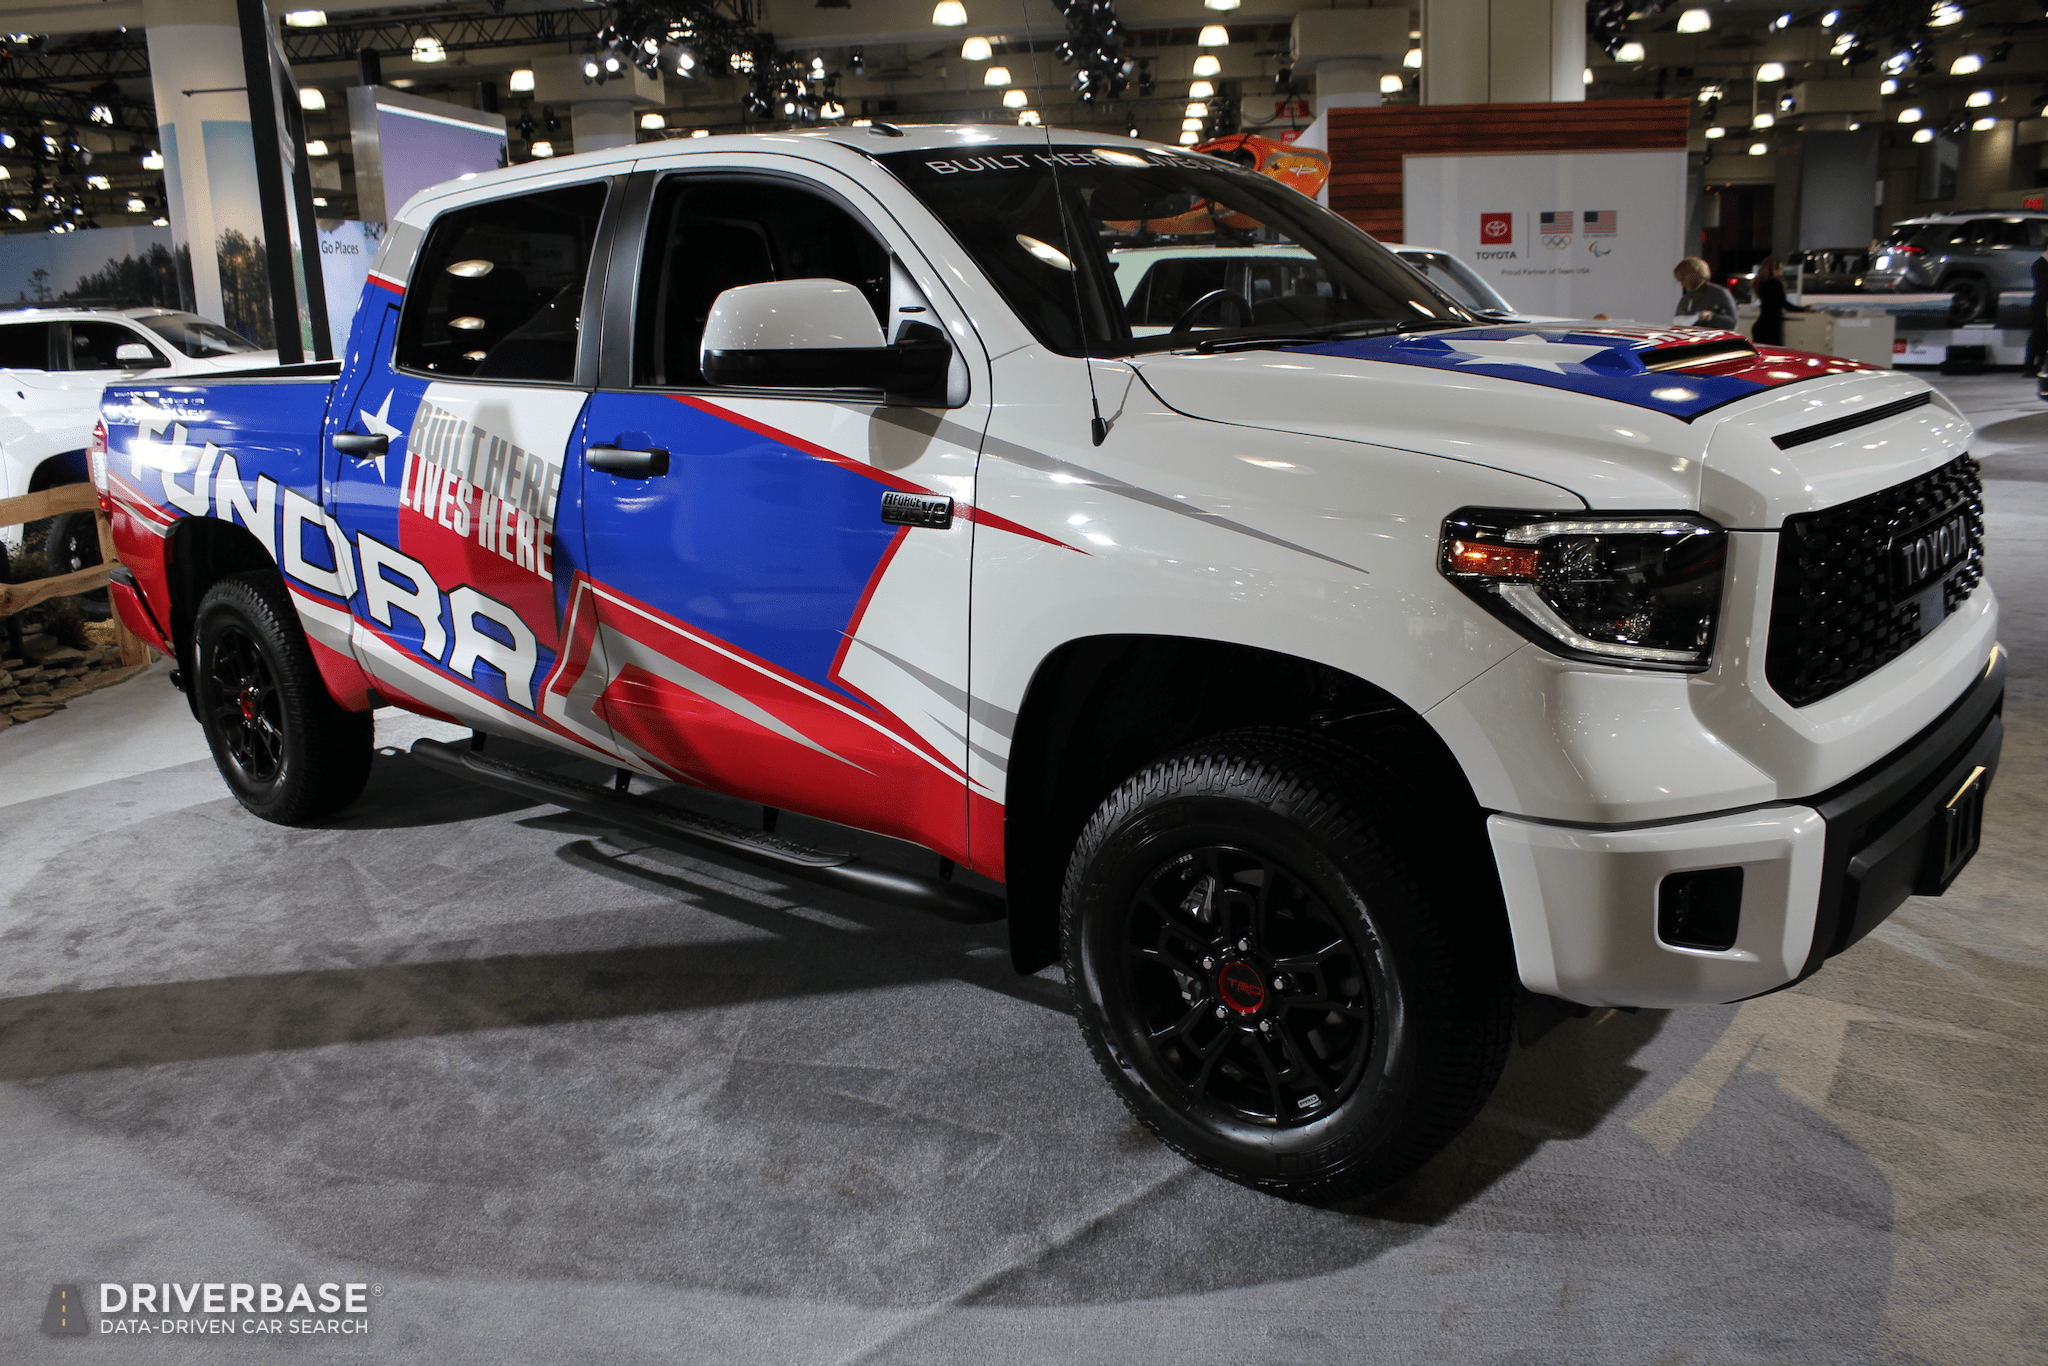 2020 Toyota Tundra Trd Pro At The 2019 New York Auto Show Driverbase